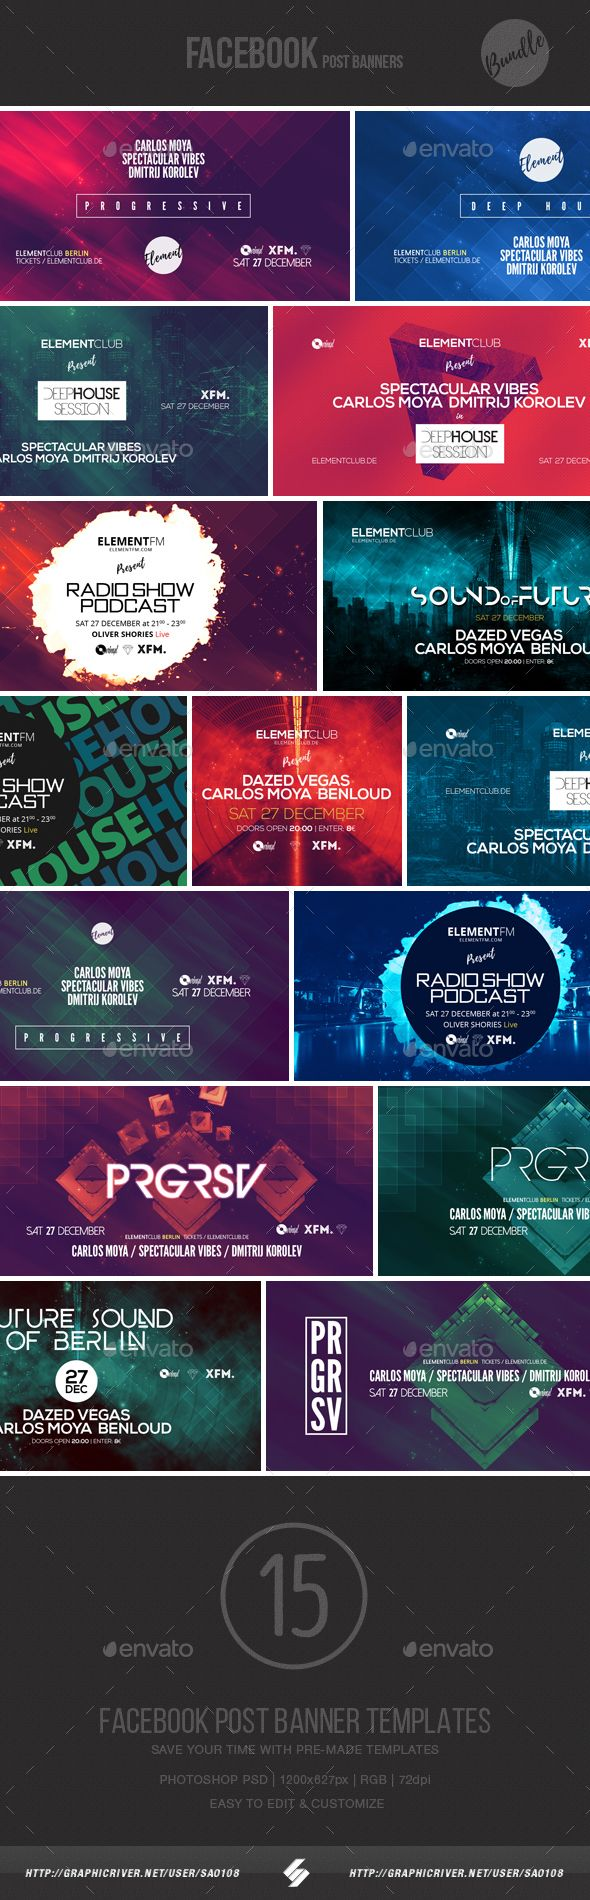 Electronic music event facebook post banner templates bundle 2 electronic music event facebook post banner templates bundle 2 pronofoot35fo Choice Image